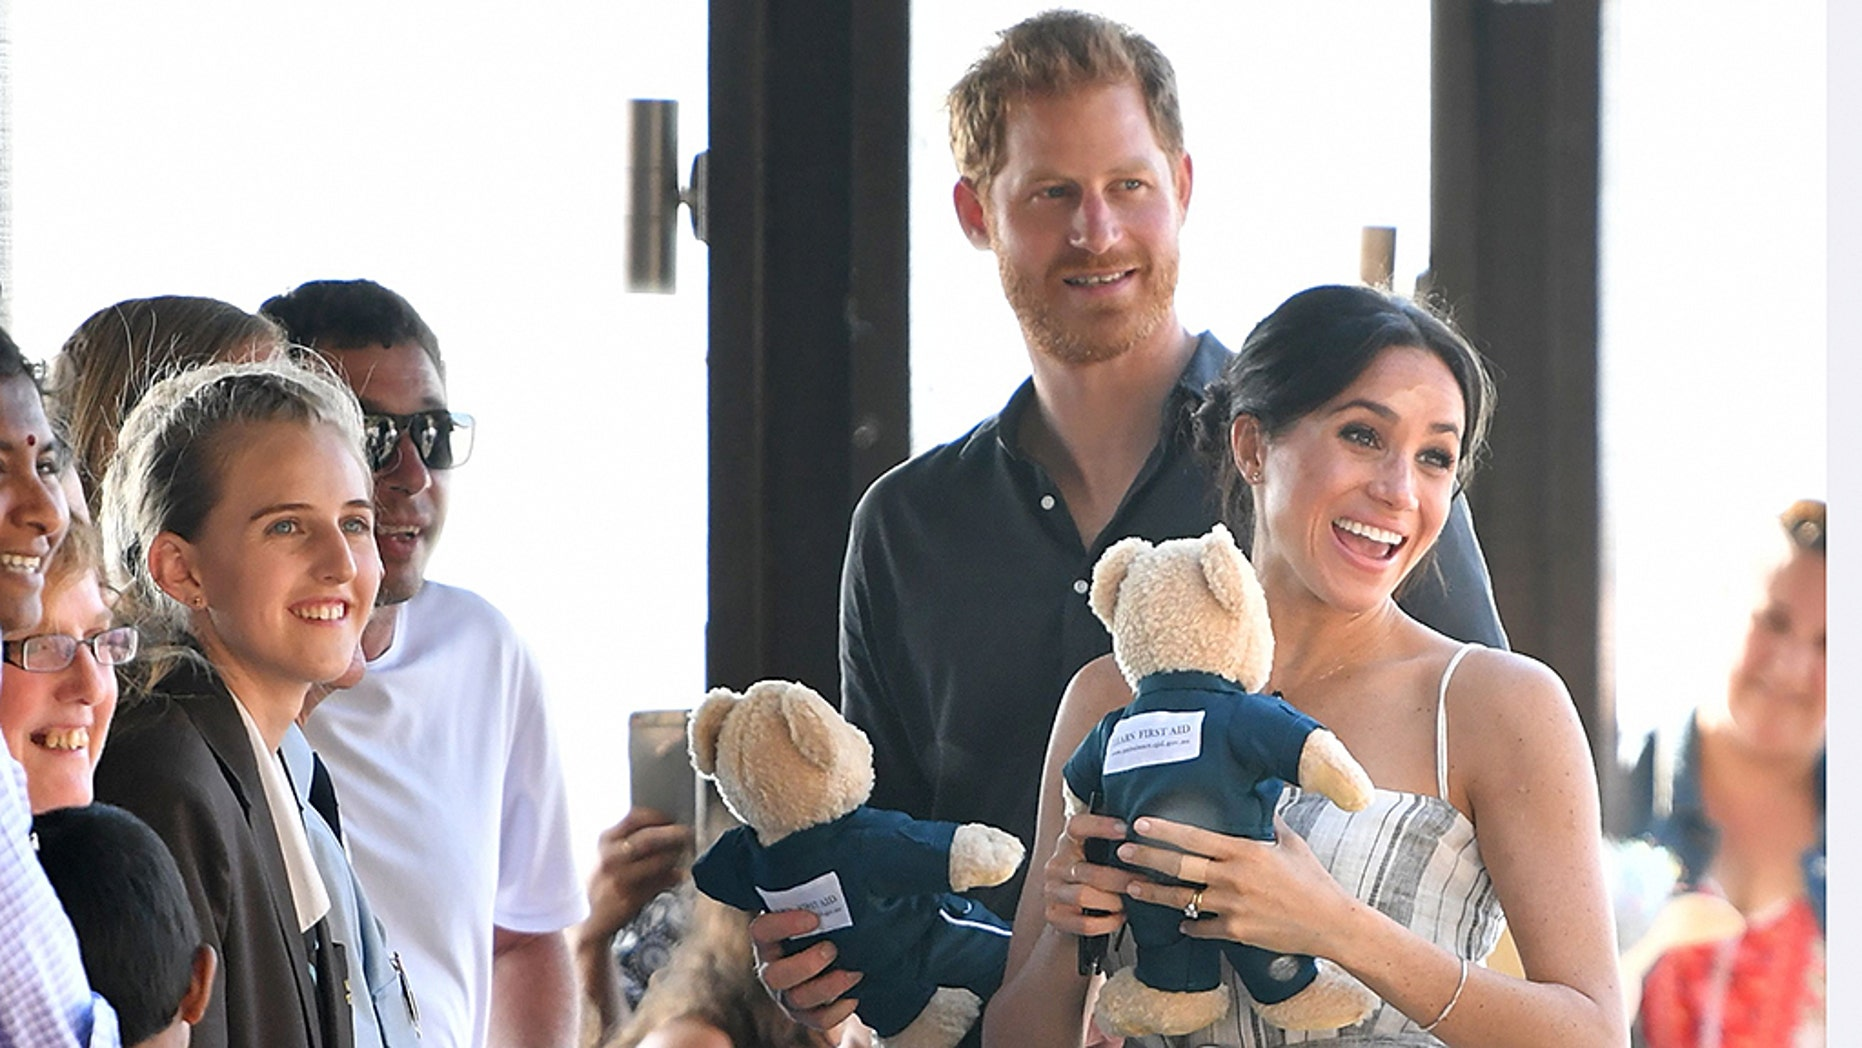 Meghan Markle and Prince Harry have received hundreds of gifts.